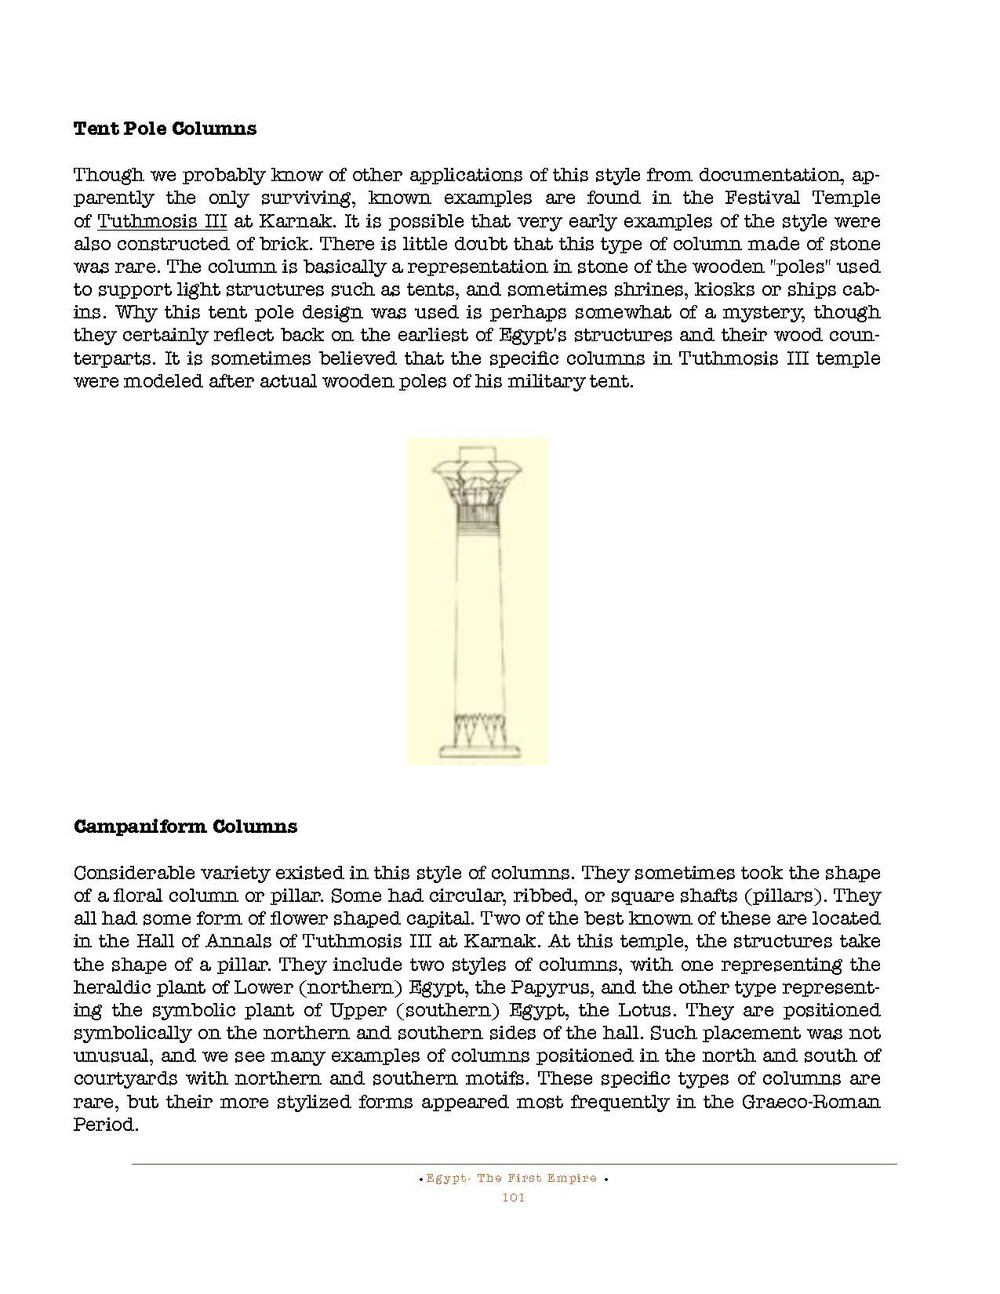 HOCE- Egypt  (First Empire) Notes_Page_101.jpg